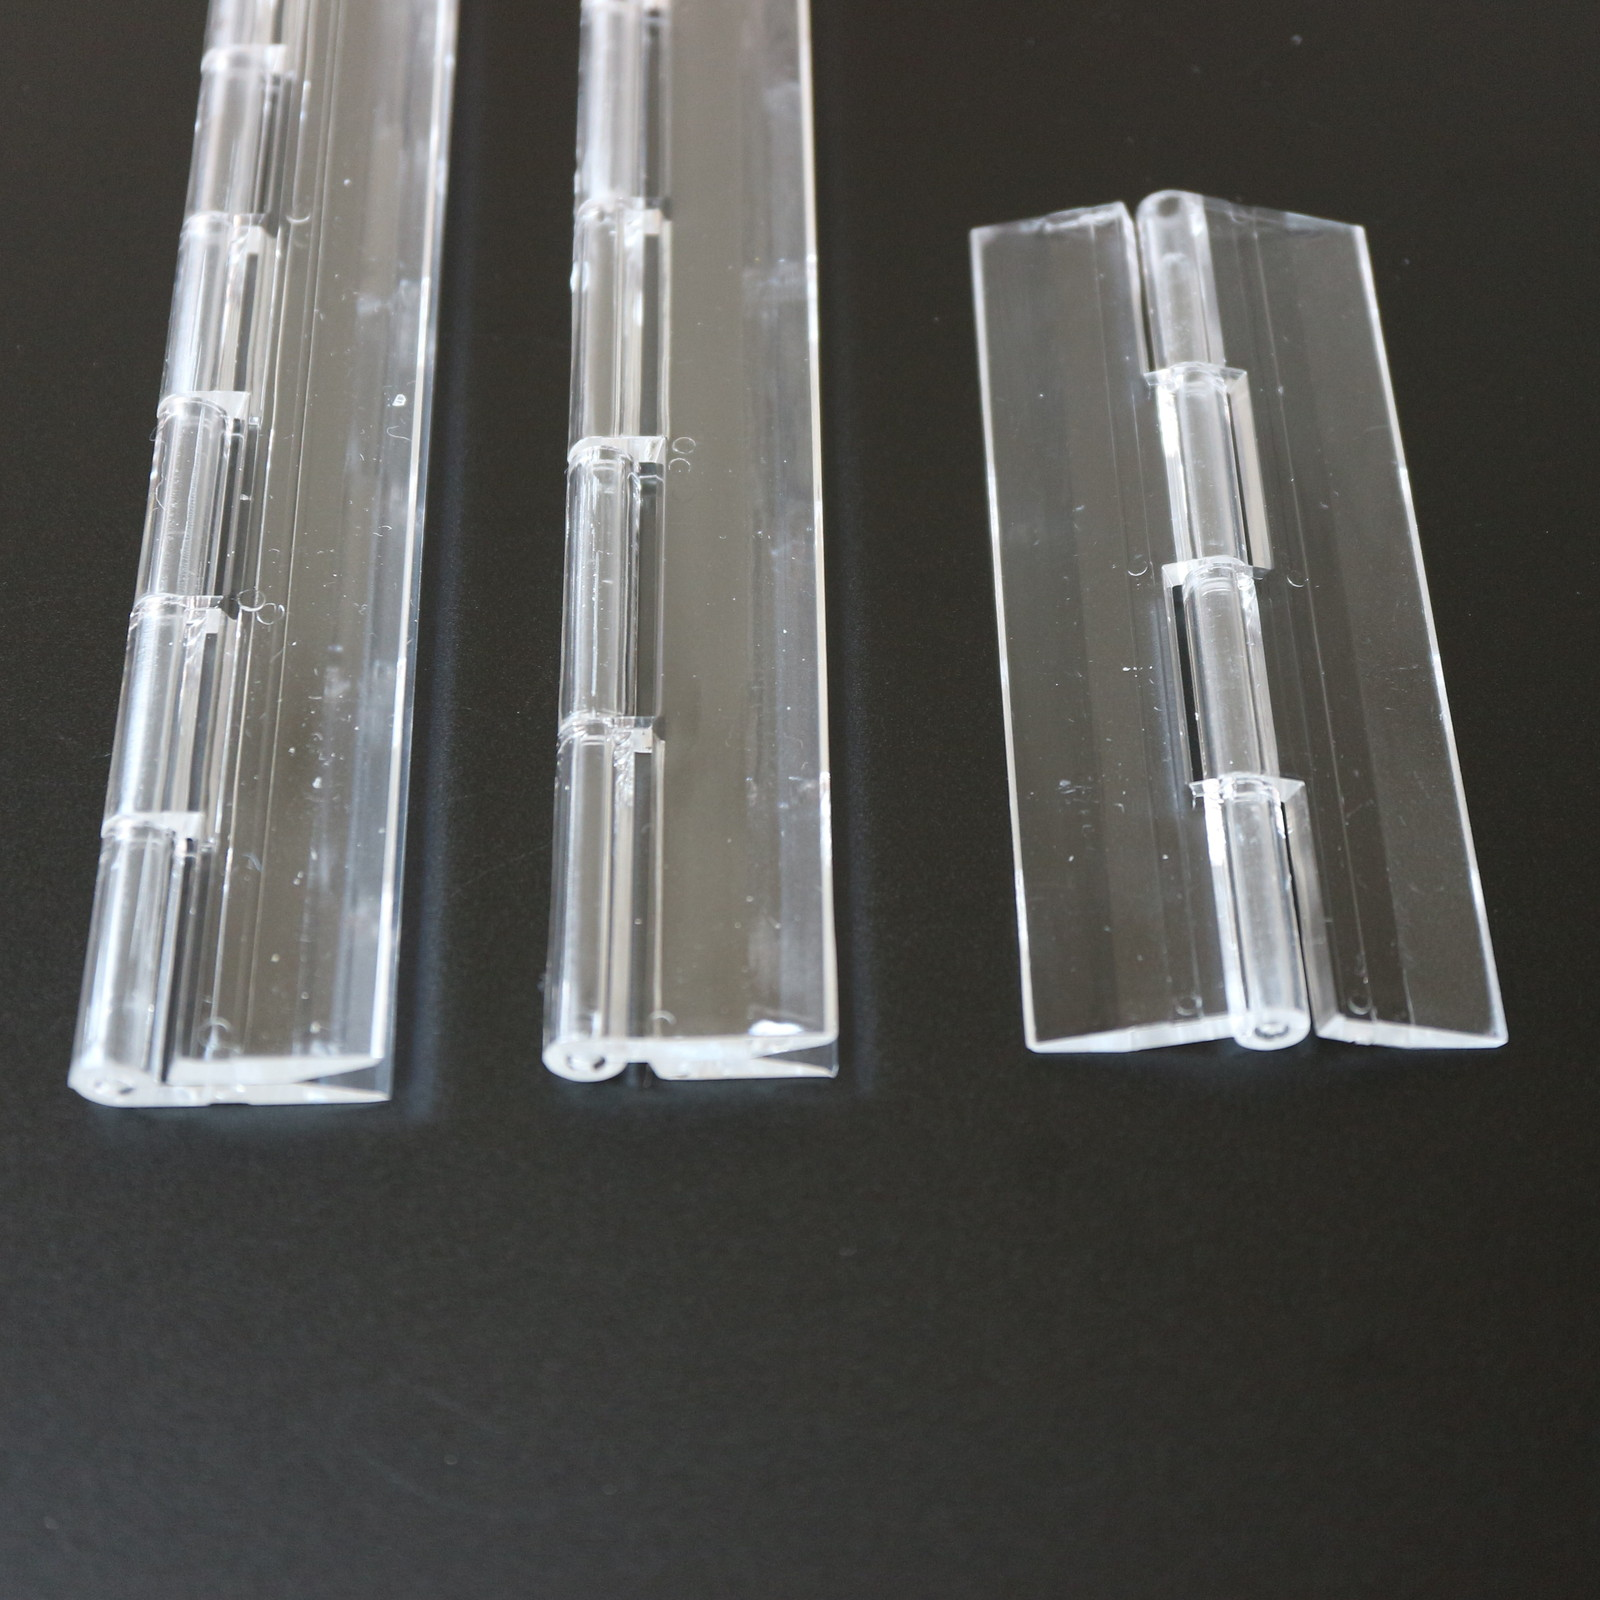 Primary image for Triple Pack- 3 x Clear Acrylic Plastic Piano Continuous Hinges 100mm 200mm 300mm